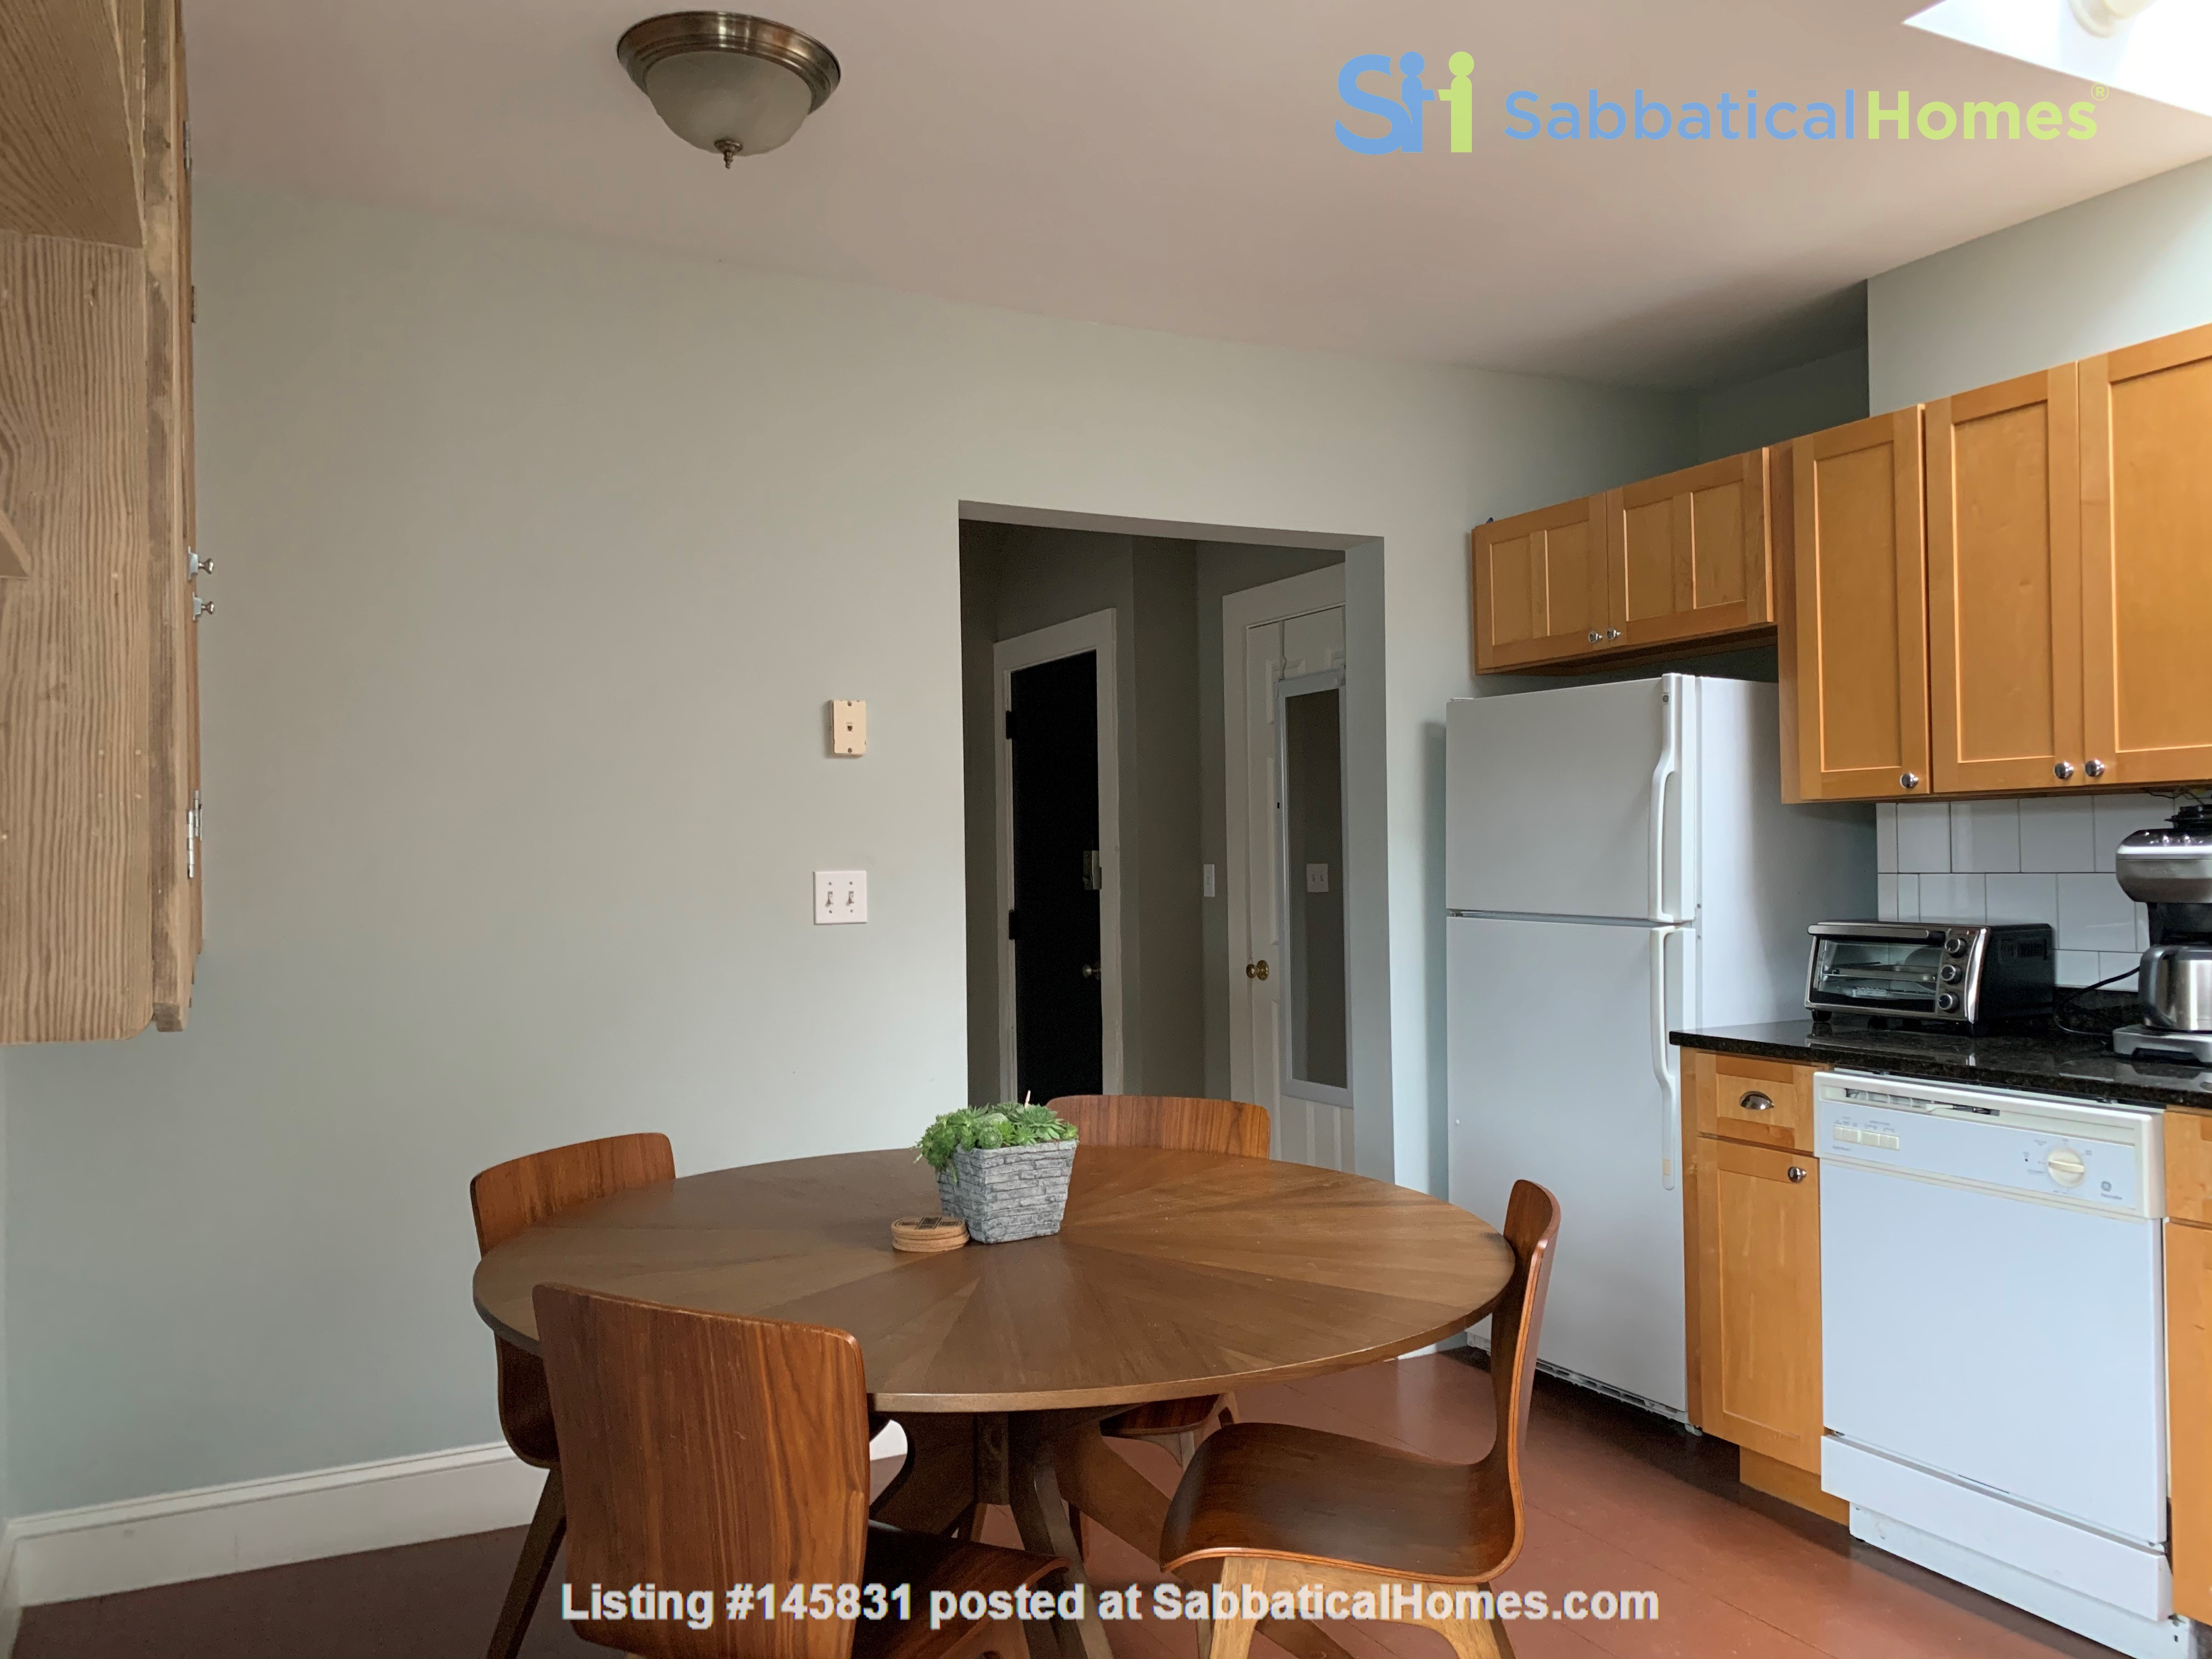 Harvard MIT HKS HBS! Fully furnished all utilities! Pets OK! No fee! Home Rental in Cambridge 5